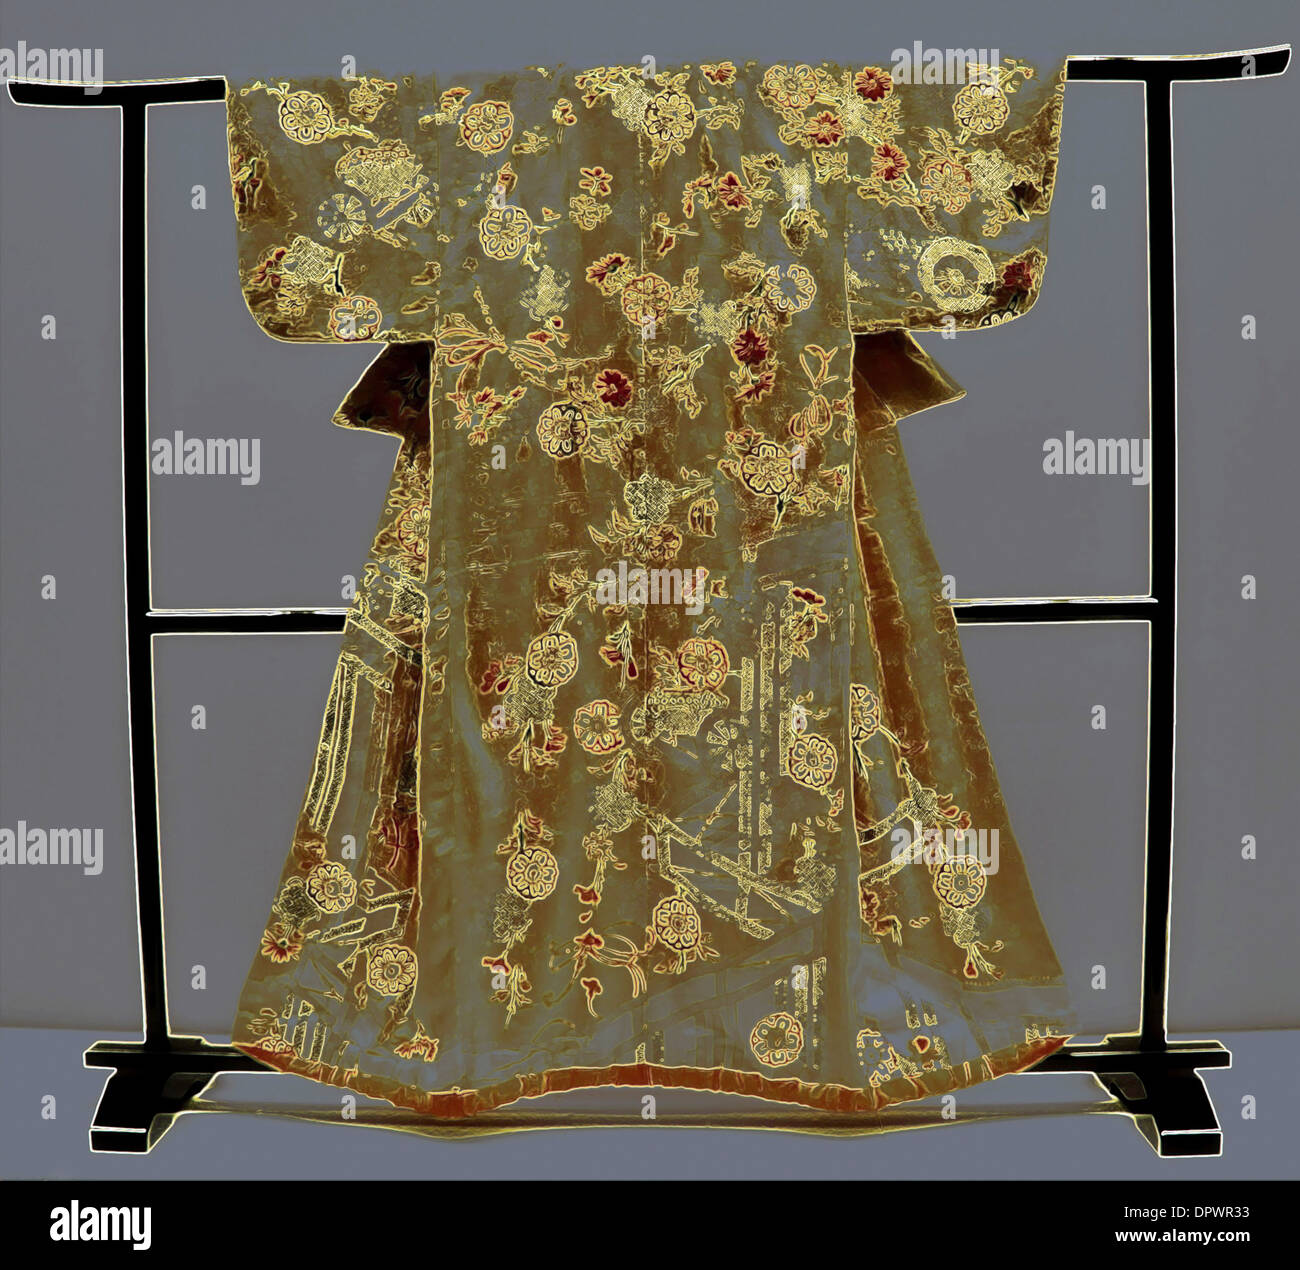 Kosode, a Japanese garment with small wrist openings, dating from the Edo Period- 18th century, Tokyo National Museum, Japan. - Stock Image